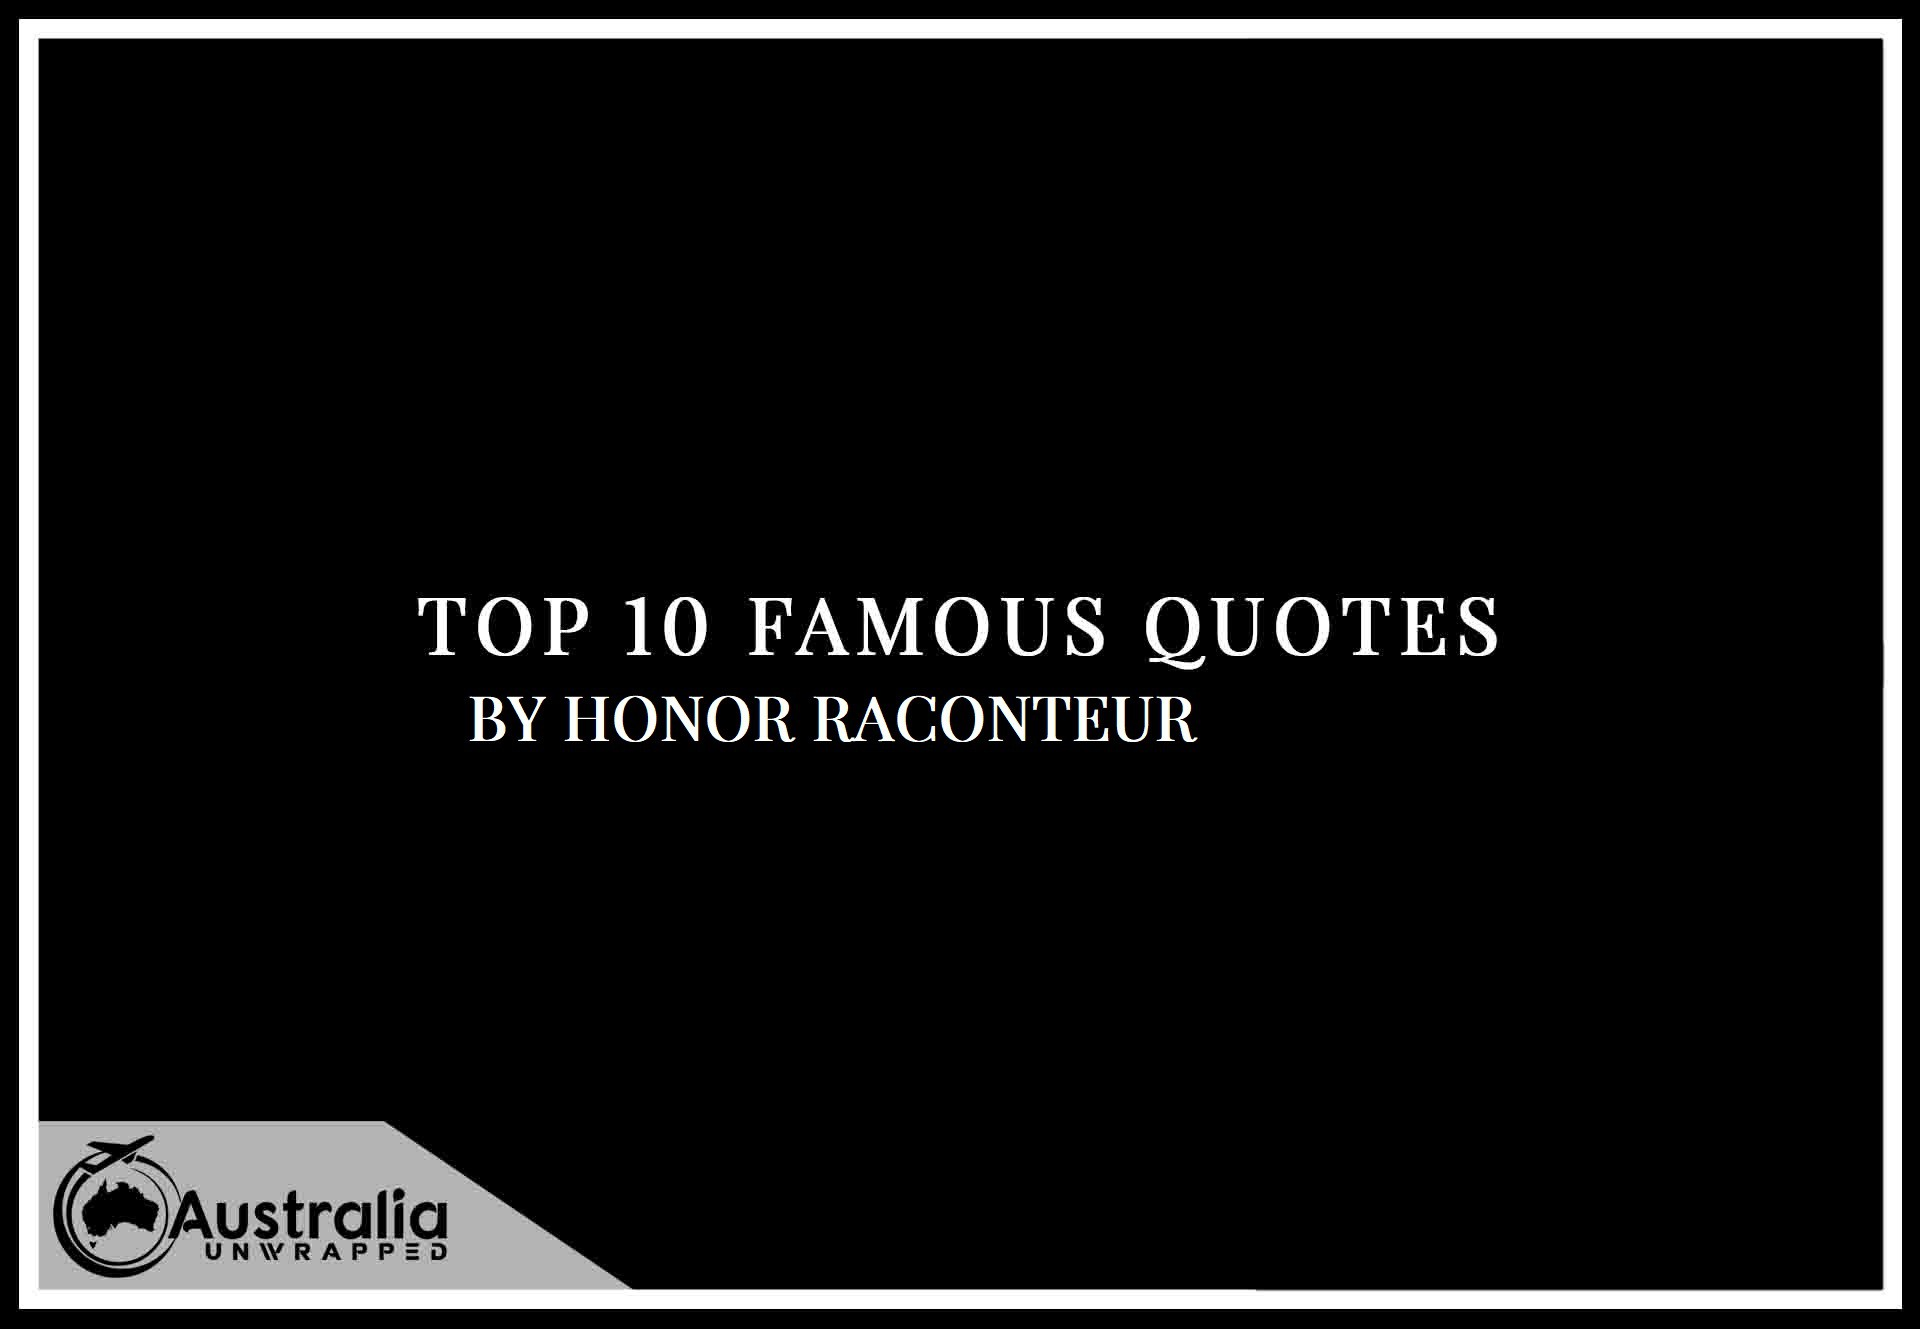 Top 10 Famous Quotes by Author Honor Raconteur